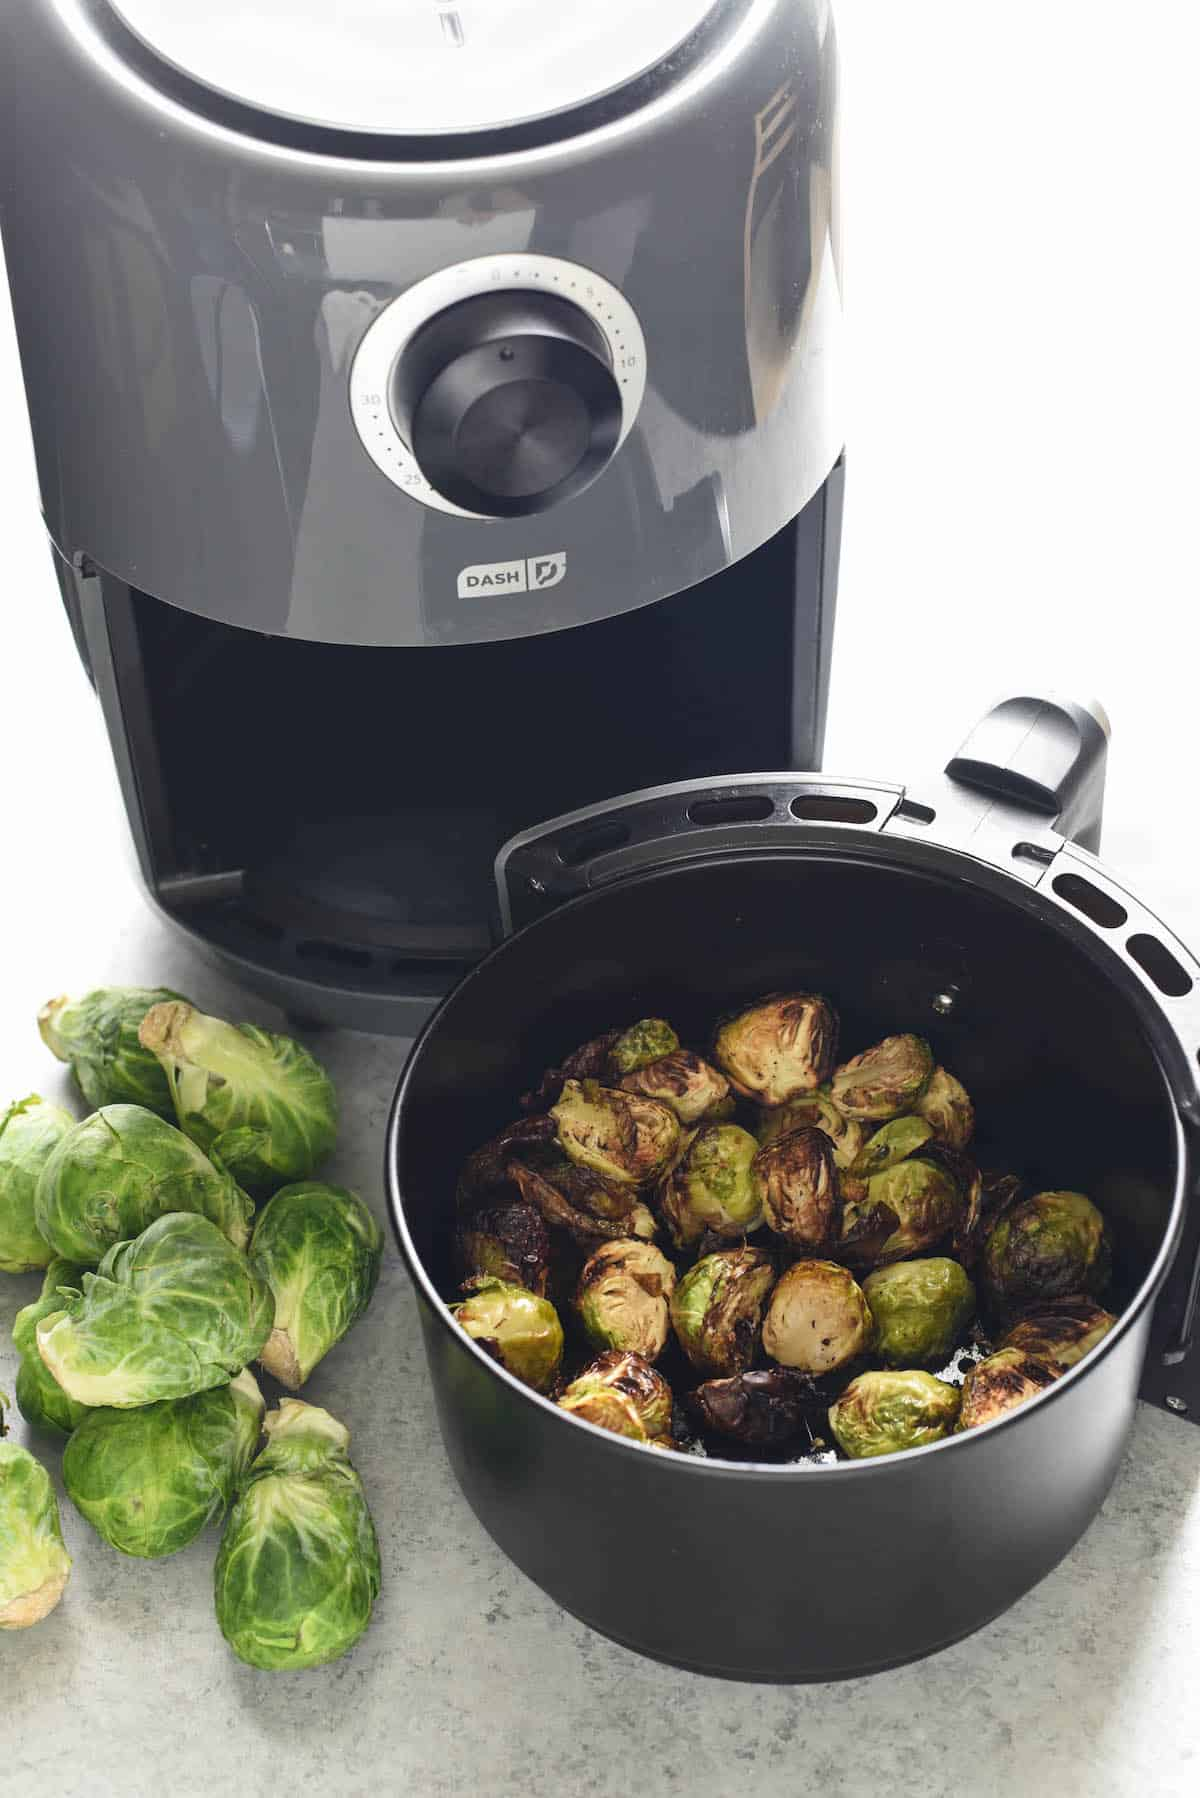 Air fryer basket with air fried brussels sprouts inside, with air fryer in background. Raw brussels sprouts on table.